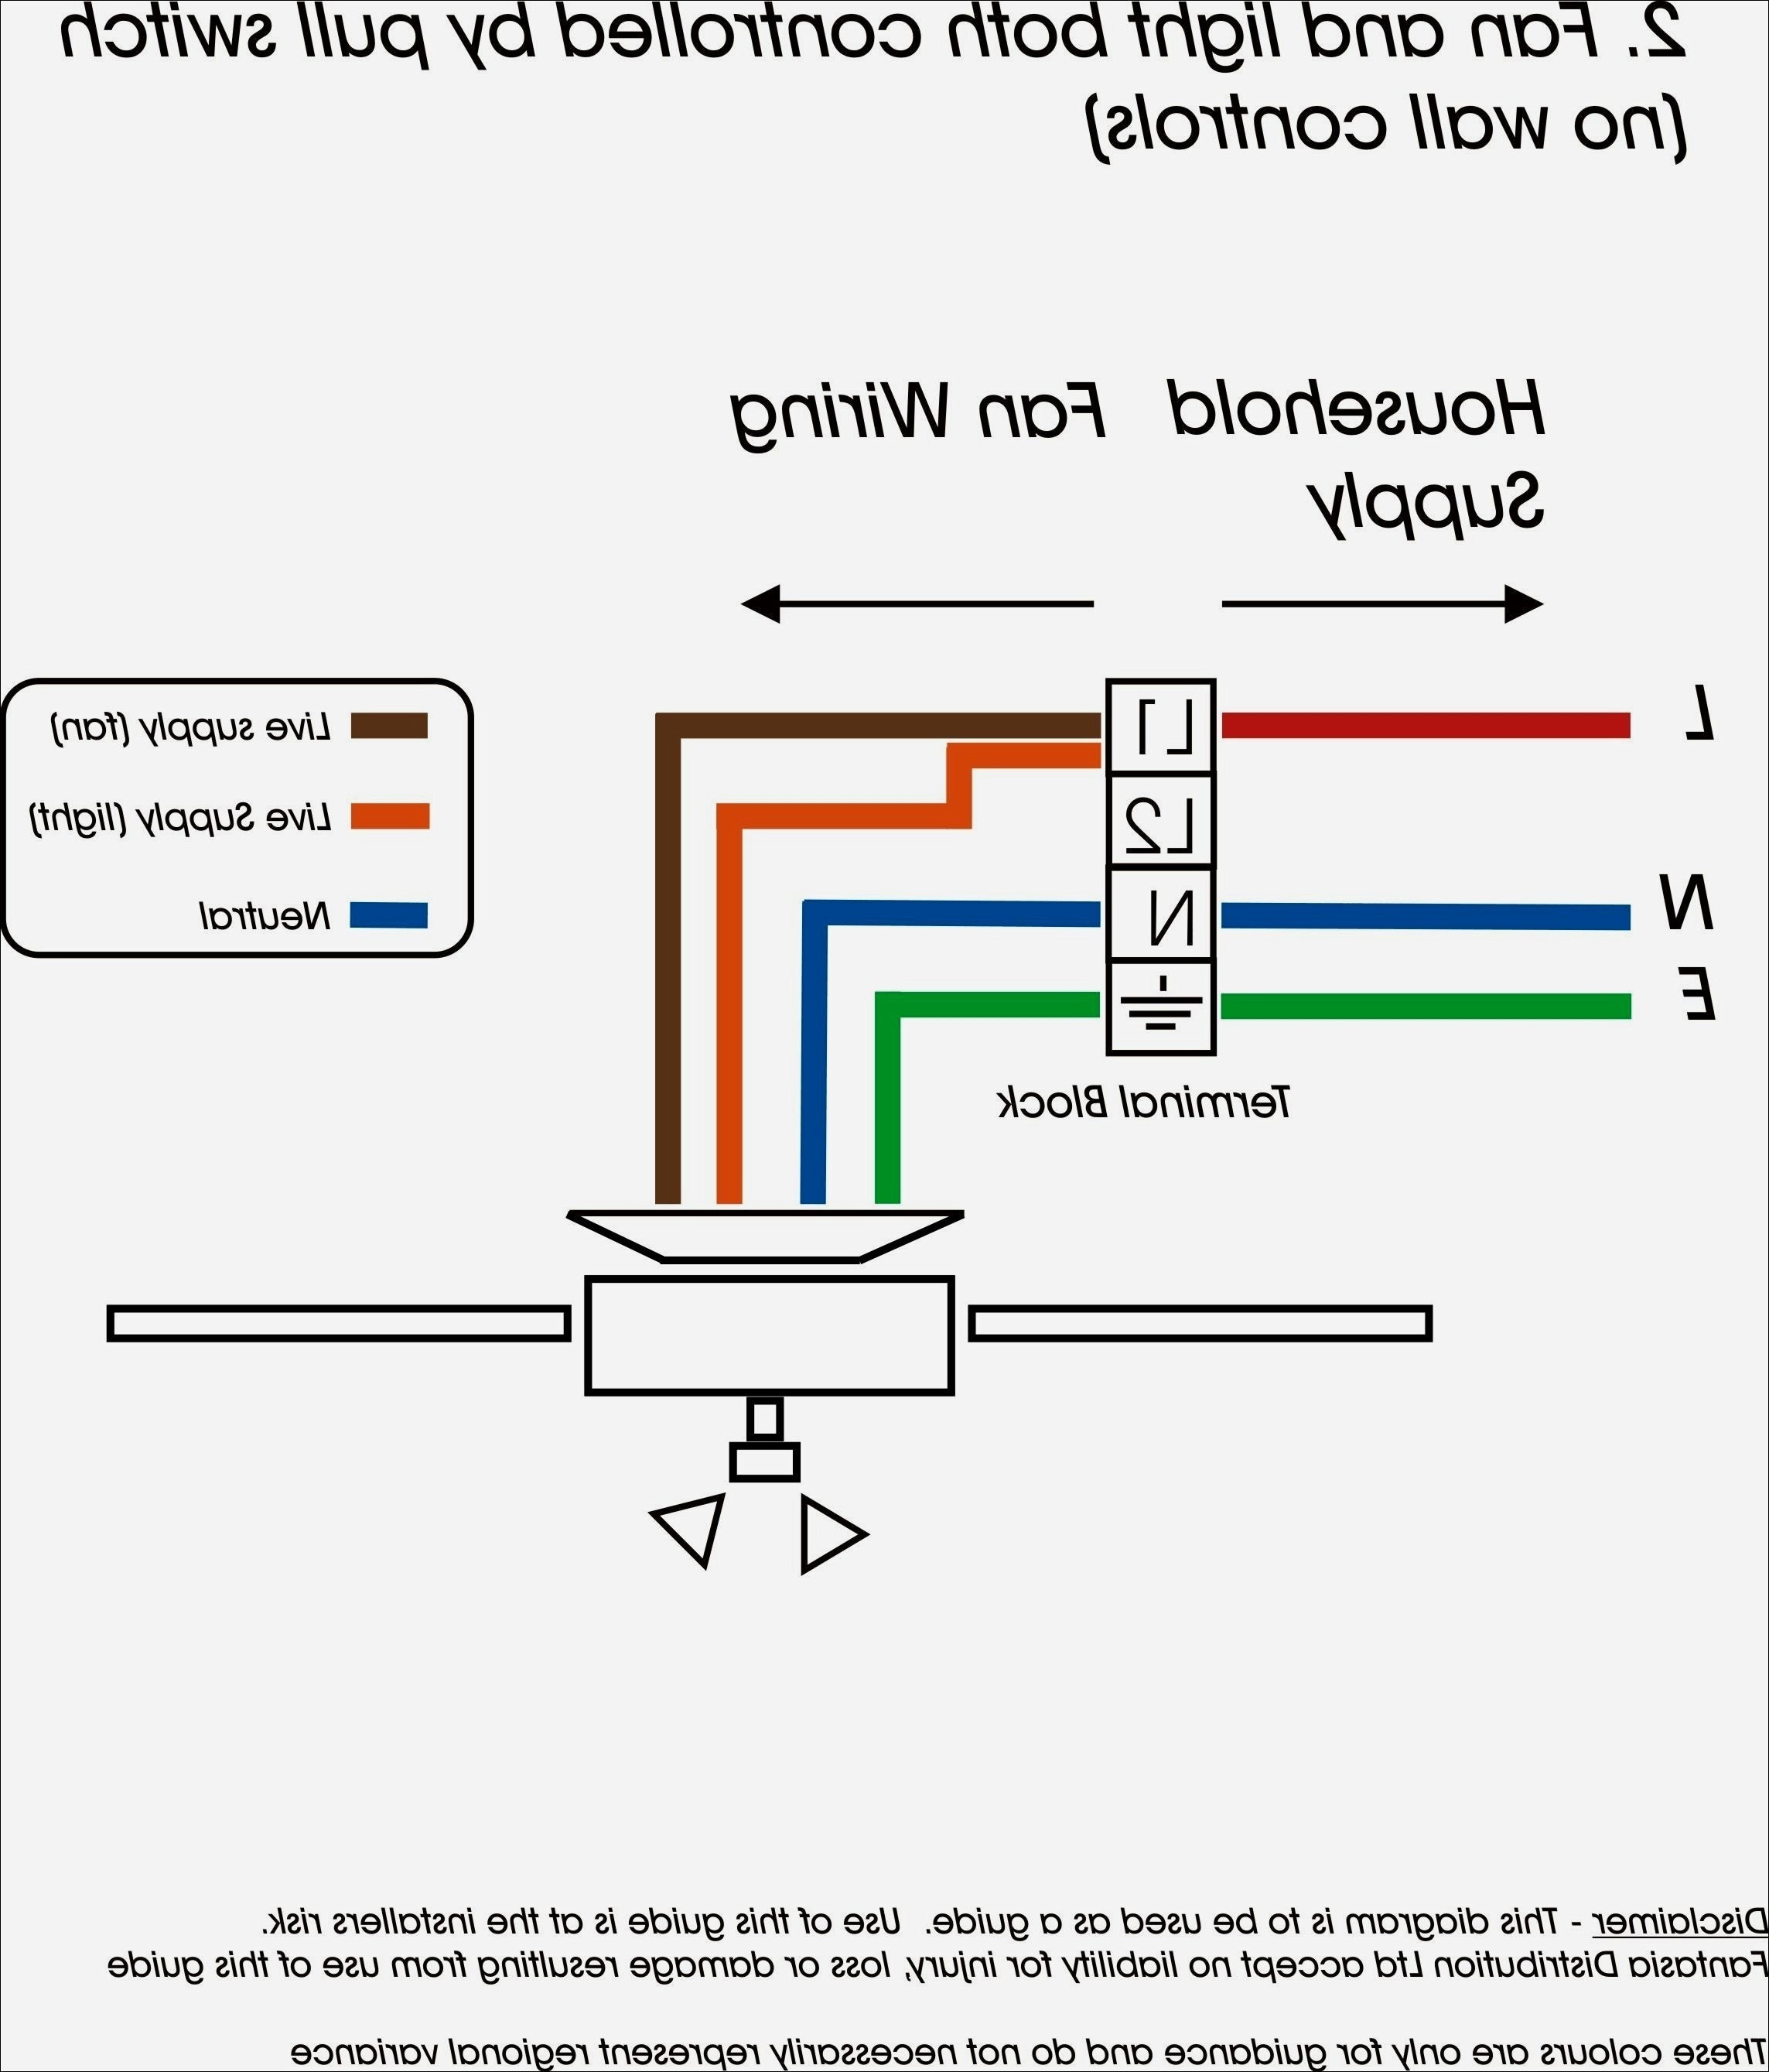 lutron dimmer wiring diagram Collection-Valid Wiring Diagram for Dimmer Switch Australia 7-b